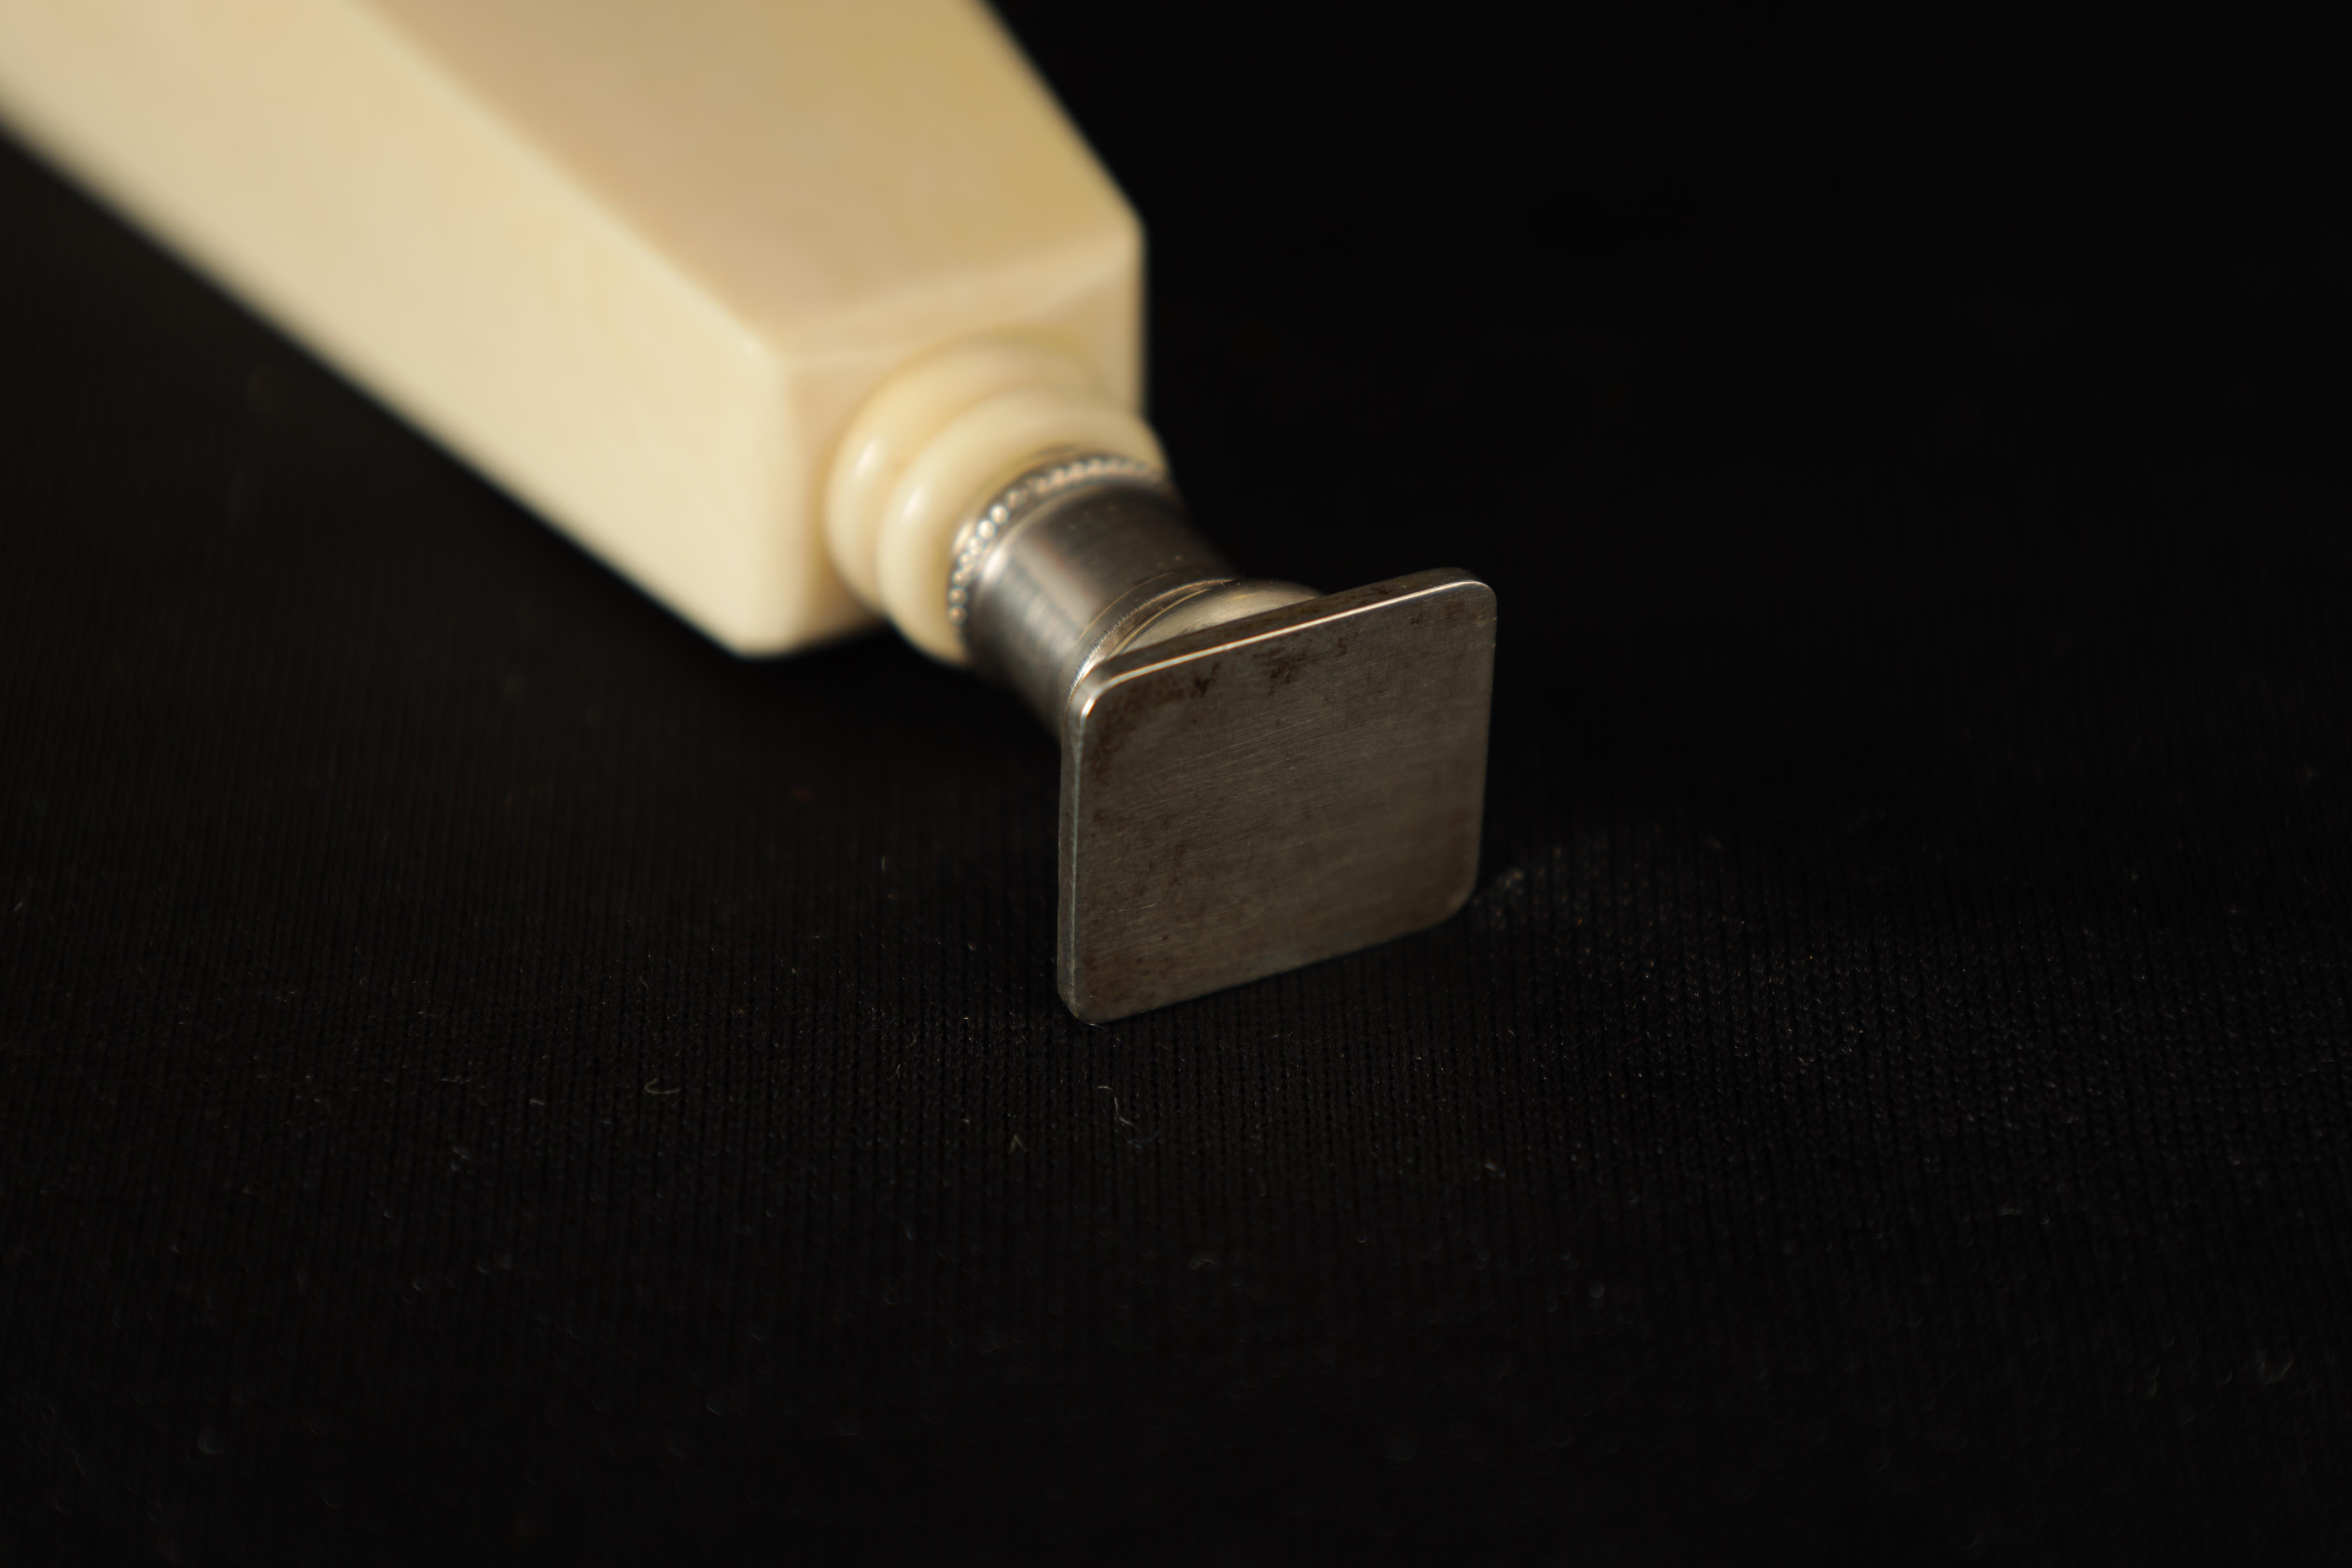 A LATE 19TH CENTURY FRENCH IVORY AND SILVER SEAL the tapered handle decorated with finely pierced - Image 5 of 5